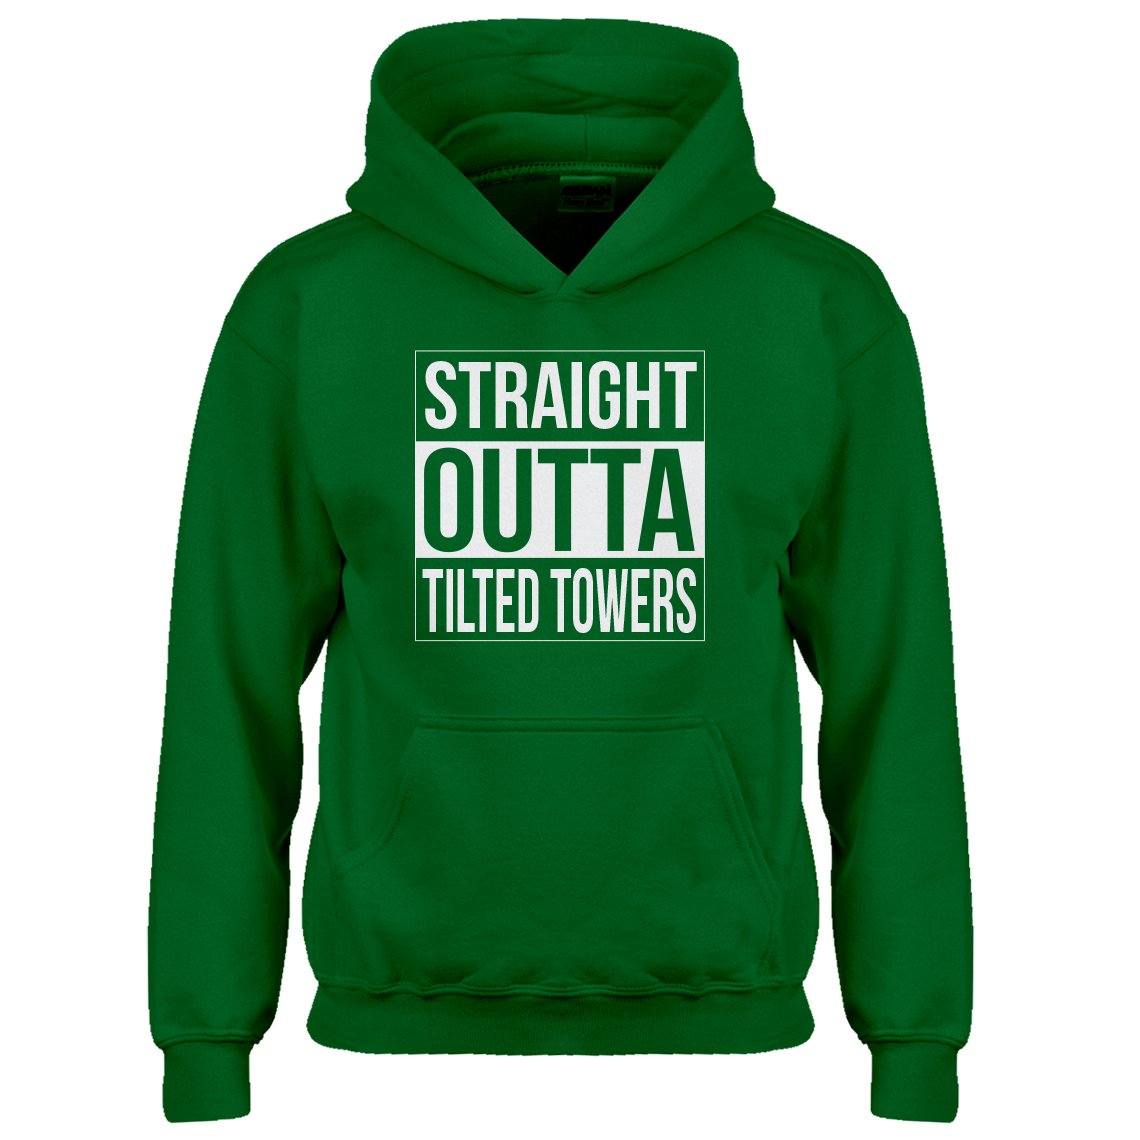 Indica Plateau Youth Straight Outta Tilted Towers Kids Hoodie 3091-Z